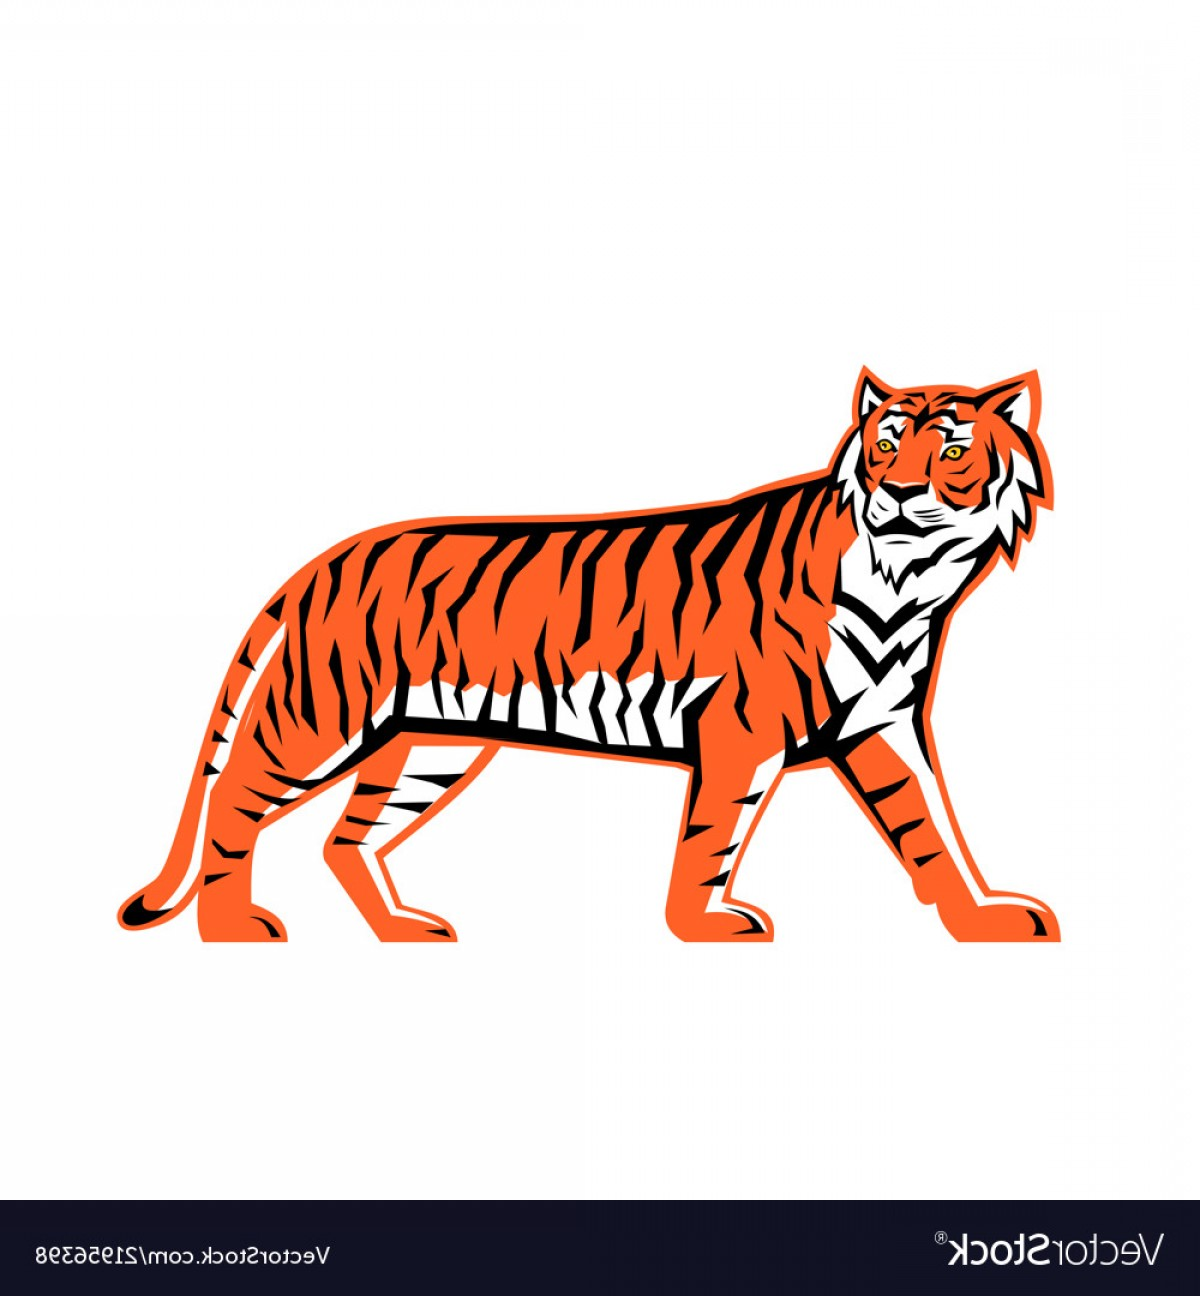 Full Body Tiger Roaring Vector: Bengal Tiger Full Body Mascot Vector